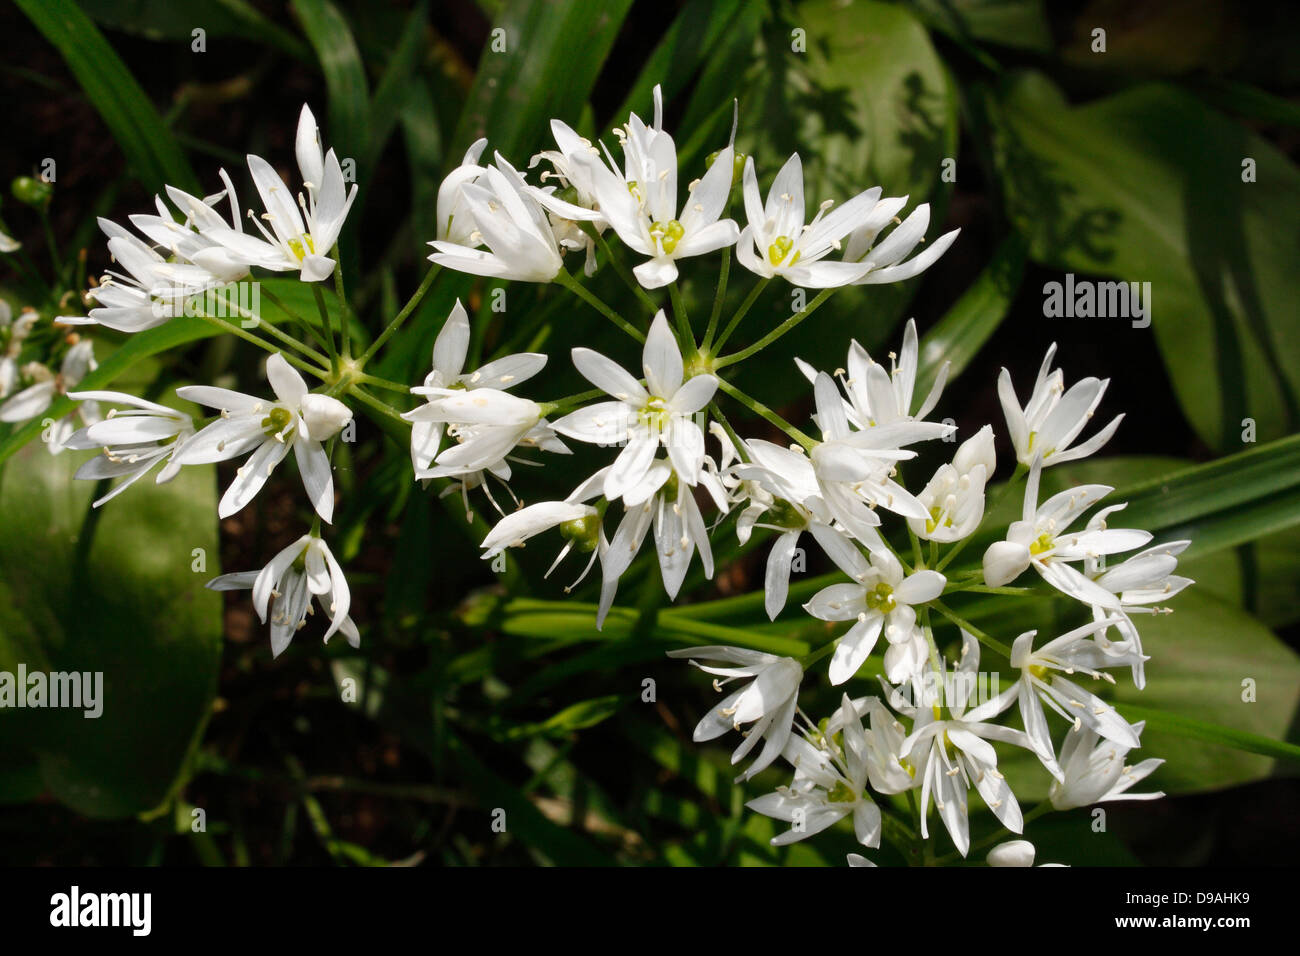 Flowers of the Wild Garlic plant, Allium Ursinum - Stock Image